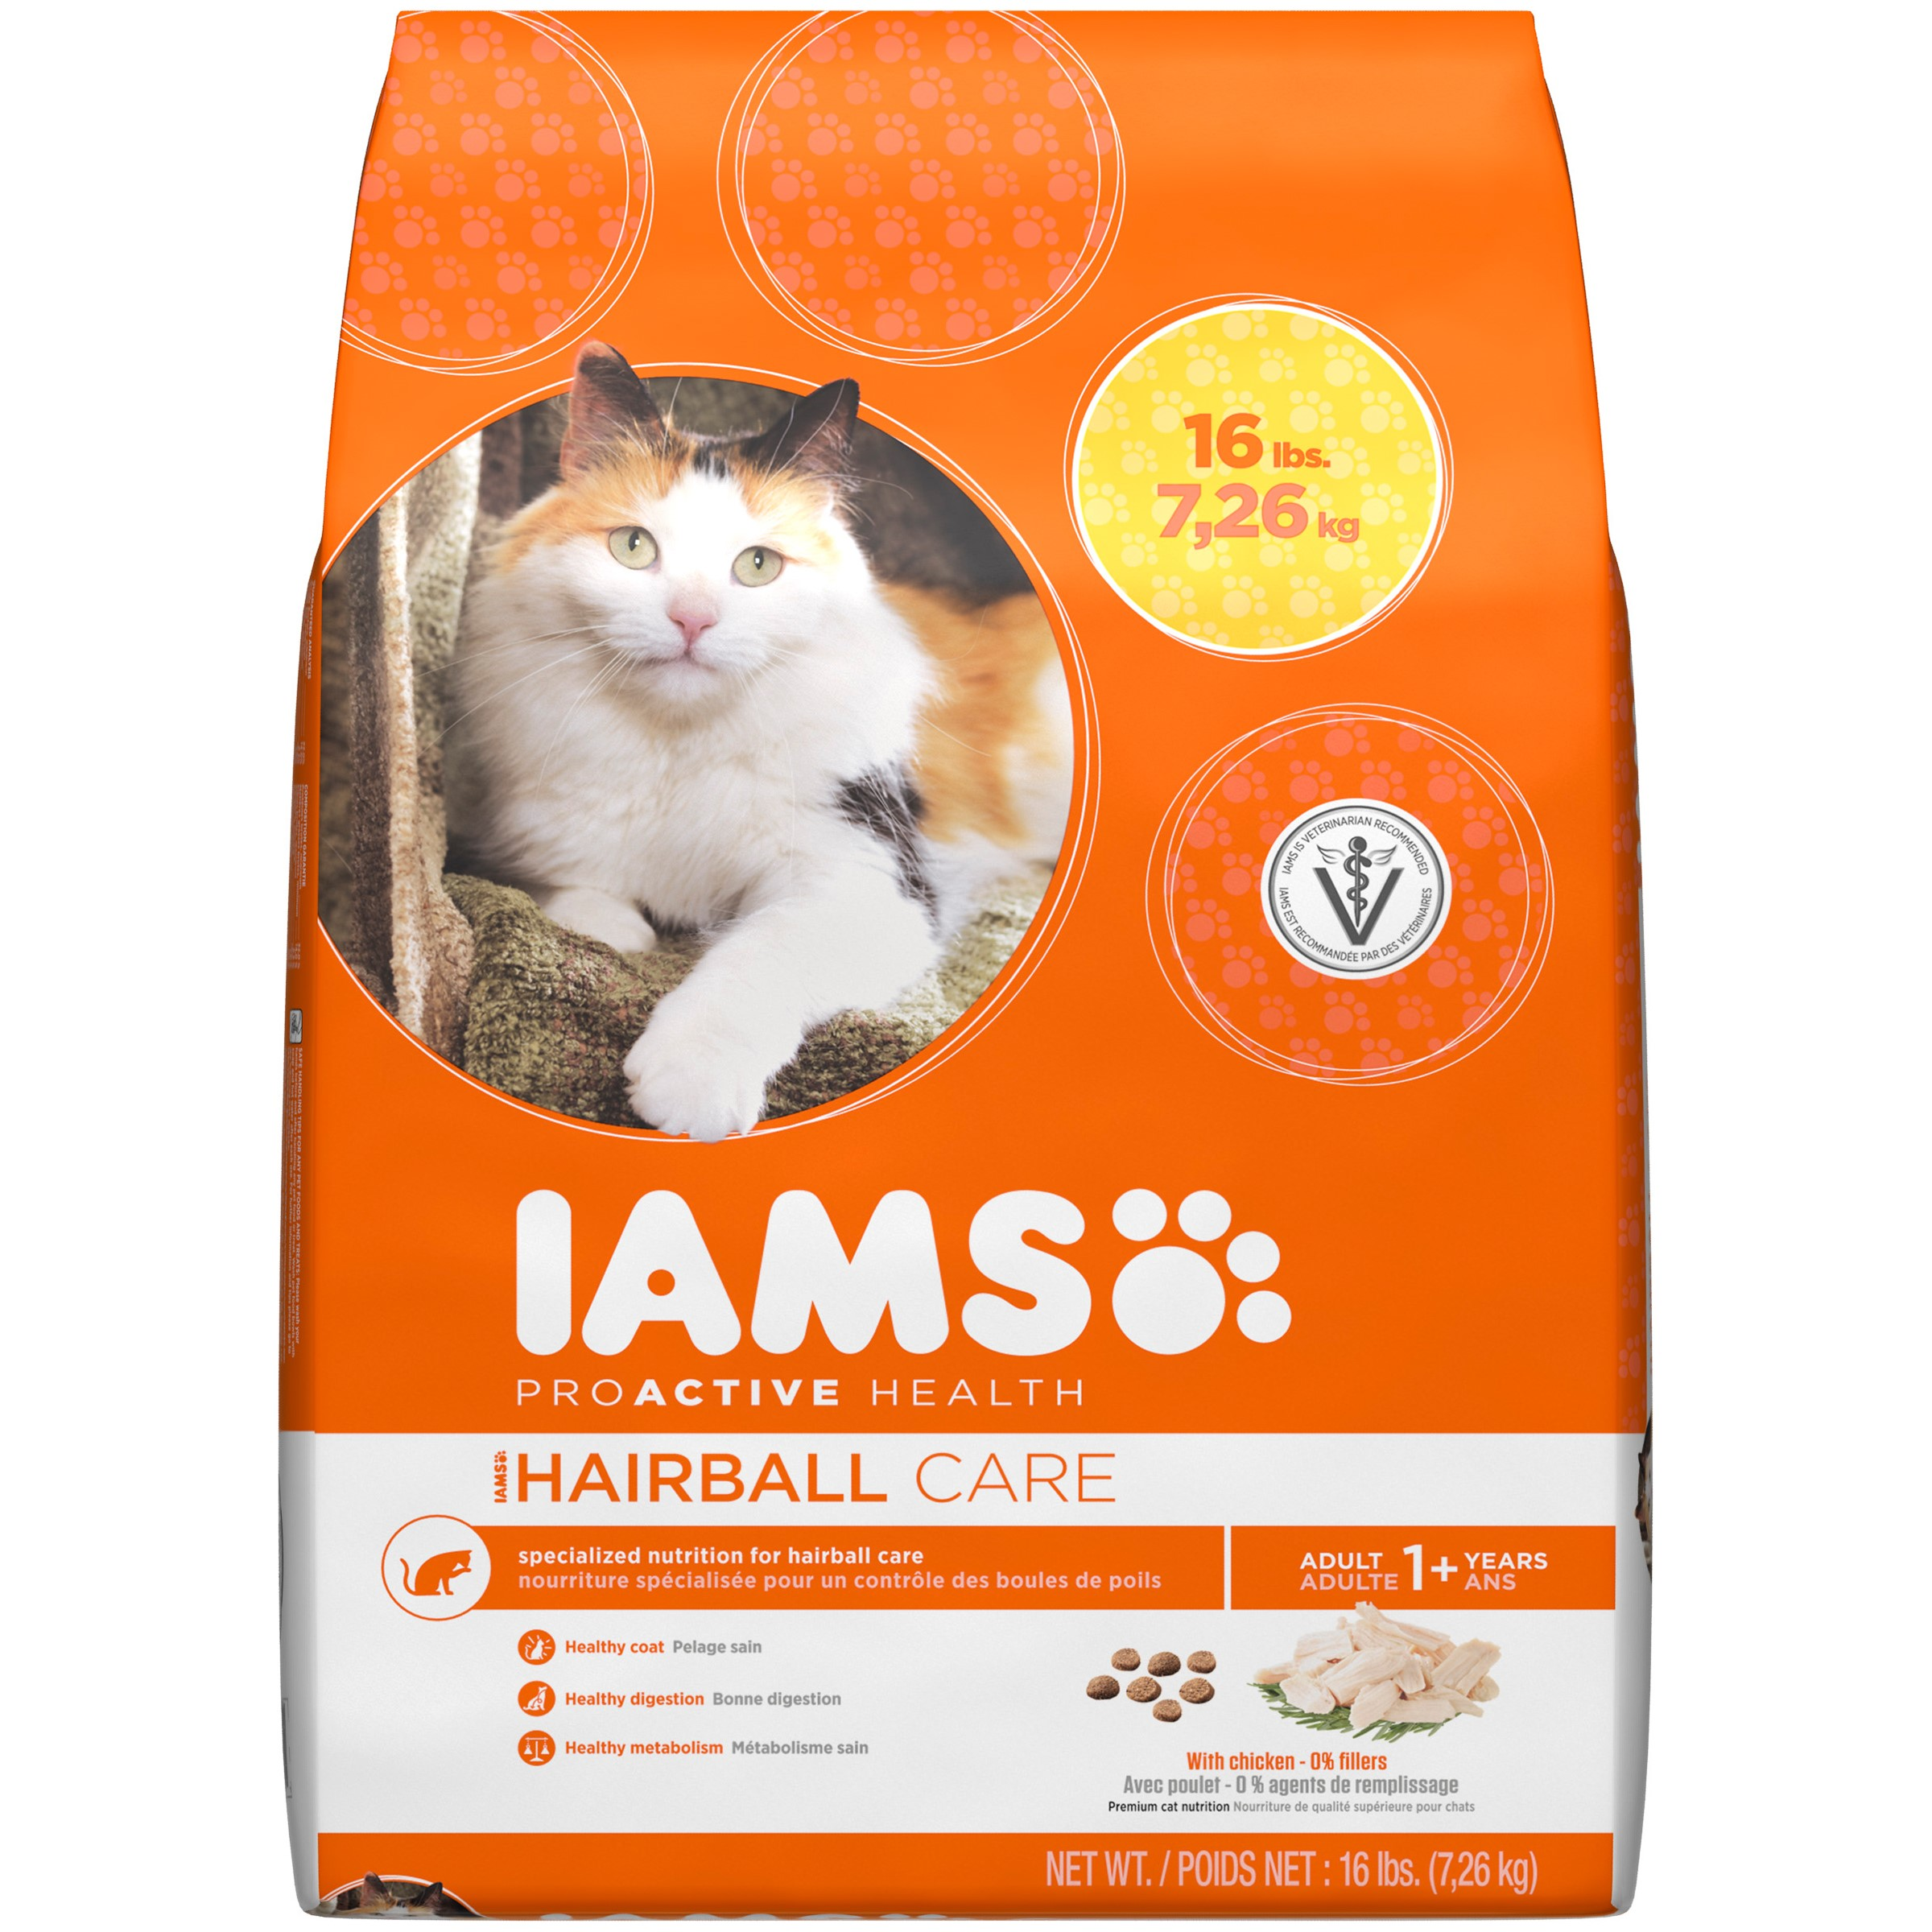 Iams ProActive Health Hairball Care Chicken Dry Cat Food, 16 Lb by Mars Petcare